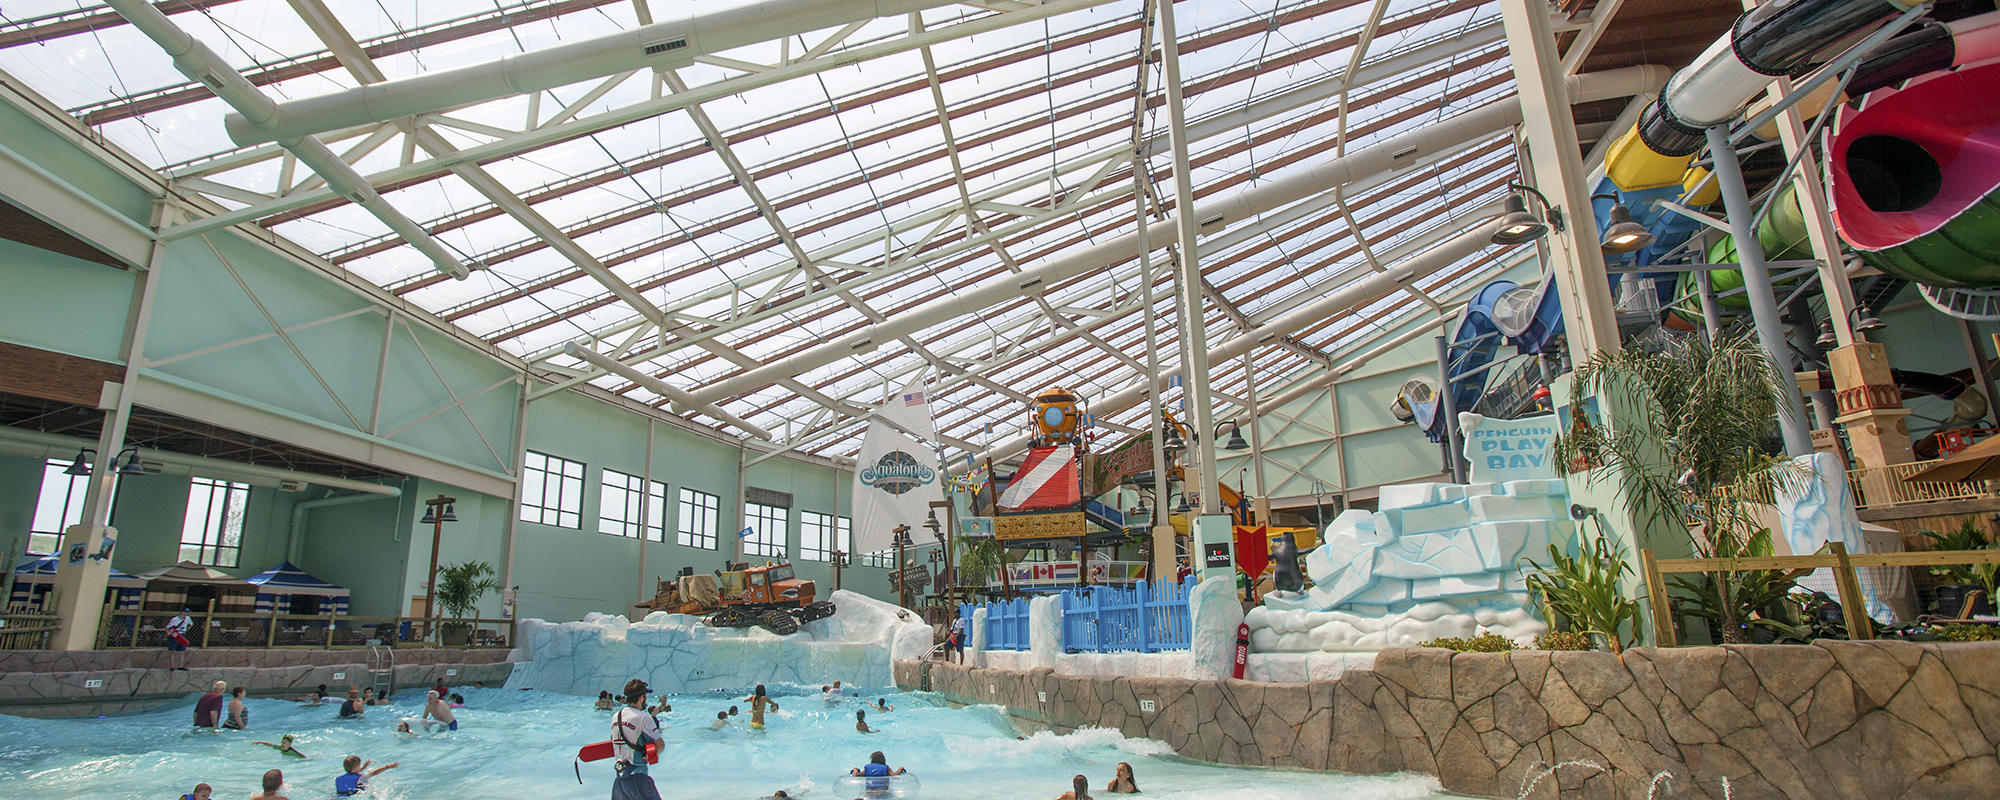 View of Aquatopia Waterpark with the wavepool, slides and the texlon roof above